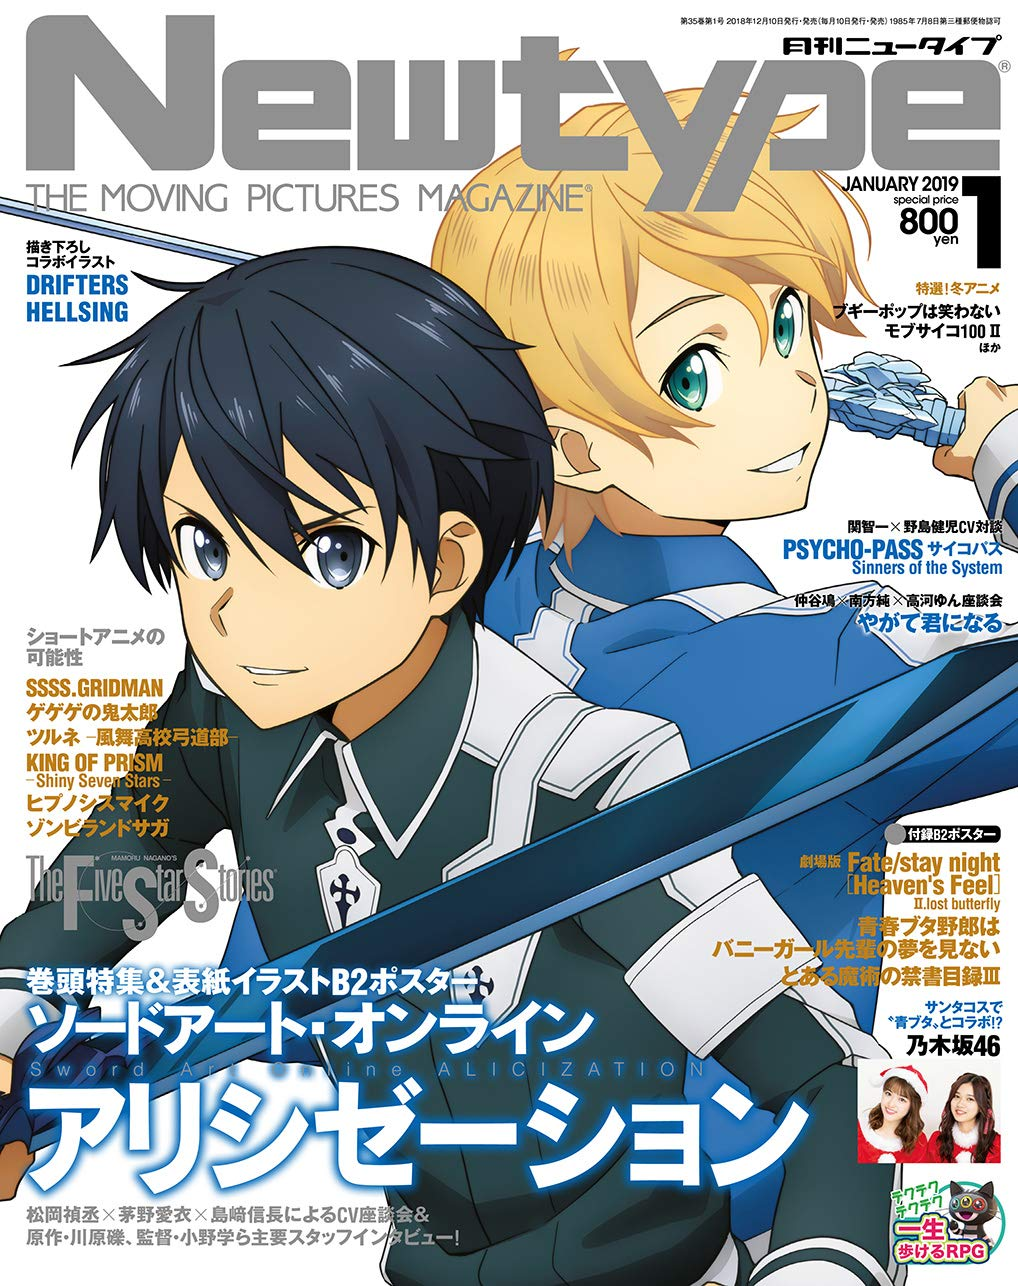 Newtype new type japanese manga anime magazine ニュータイプ 2019年1月号 january 2019 issue japanese edition tracked insured sh